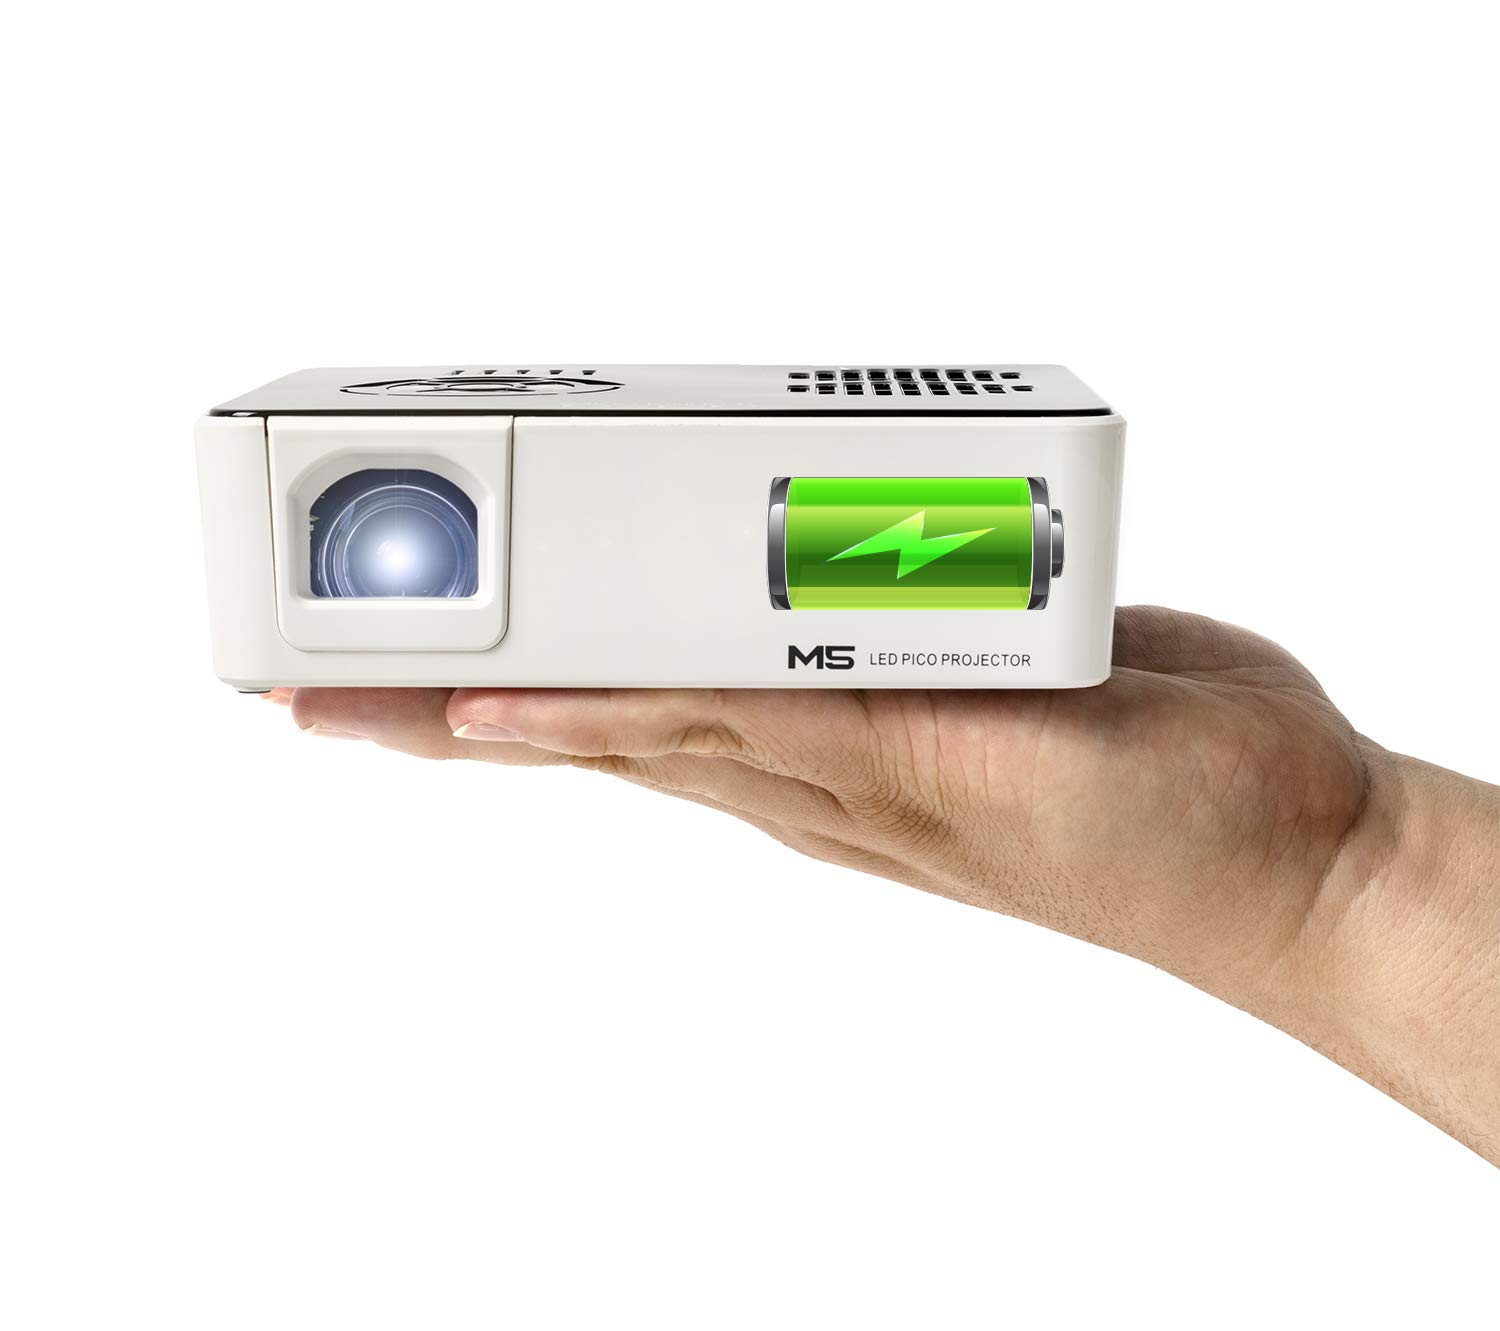 AAXA M5 Mini Portable Business Projector with Built-in Rechargeable Battery, 900 Lumens High Brightness, Native WXGA HD Resolution, Onboard Media Player, 20,000 Hours LED